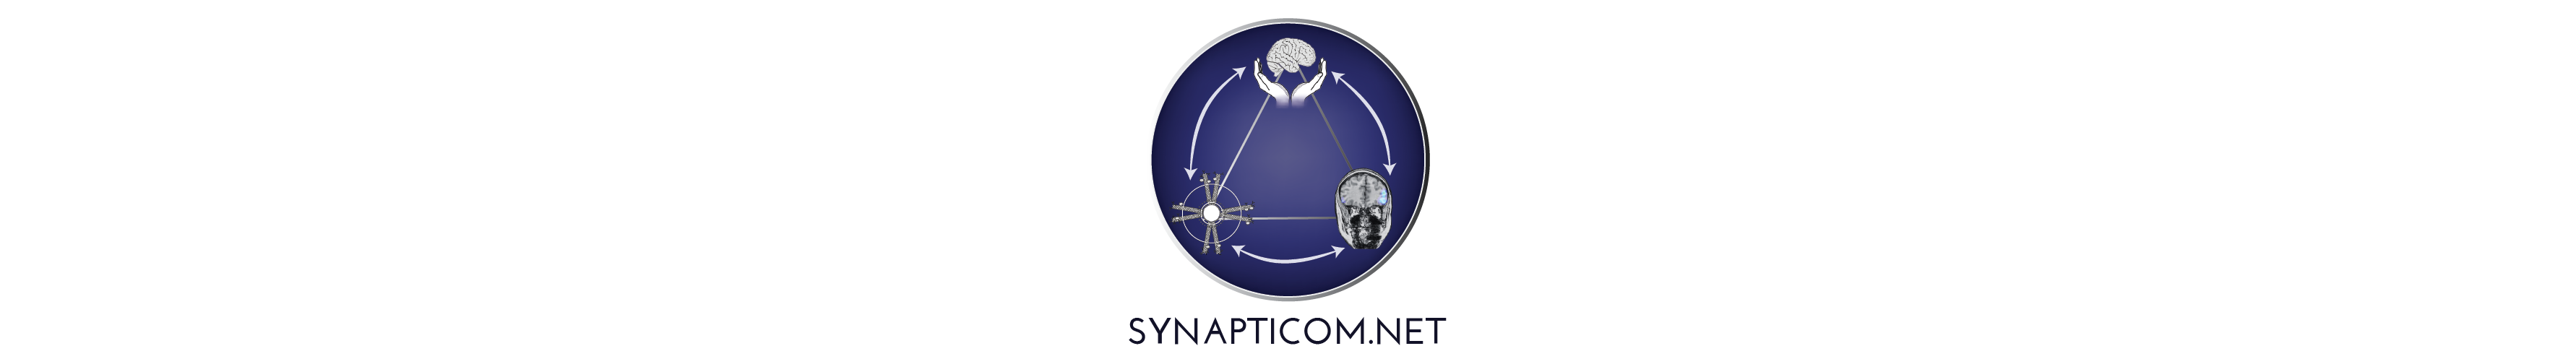 Welcome to SynaptiCOM.net